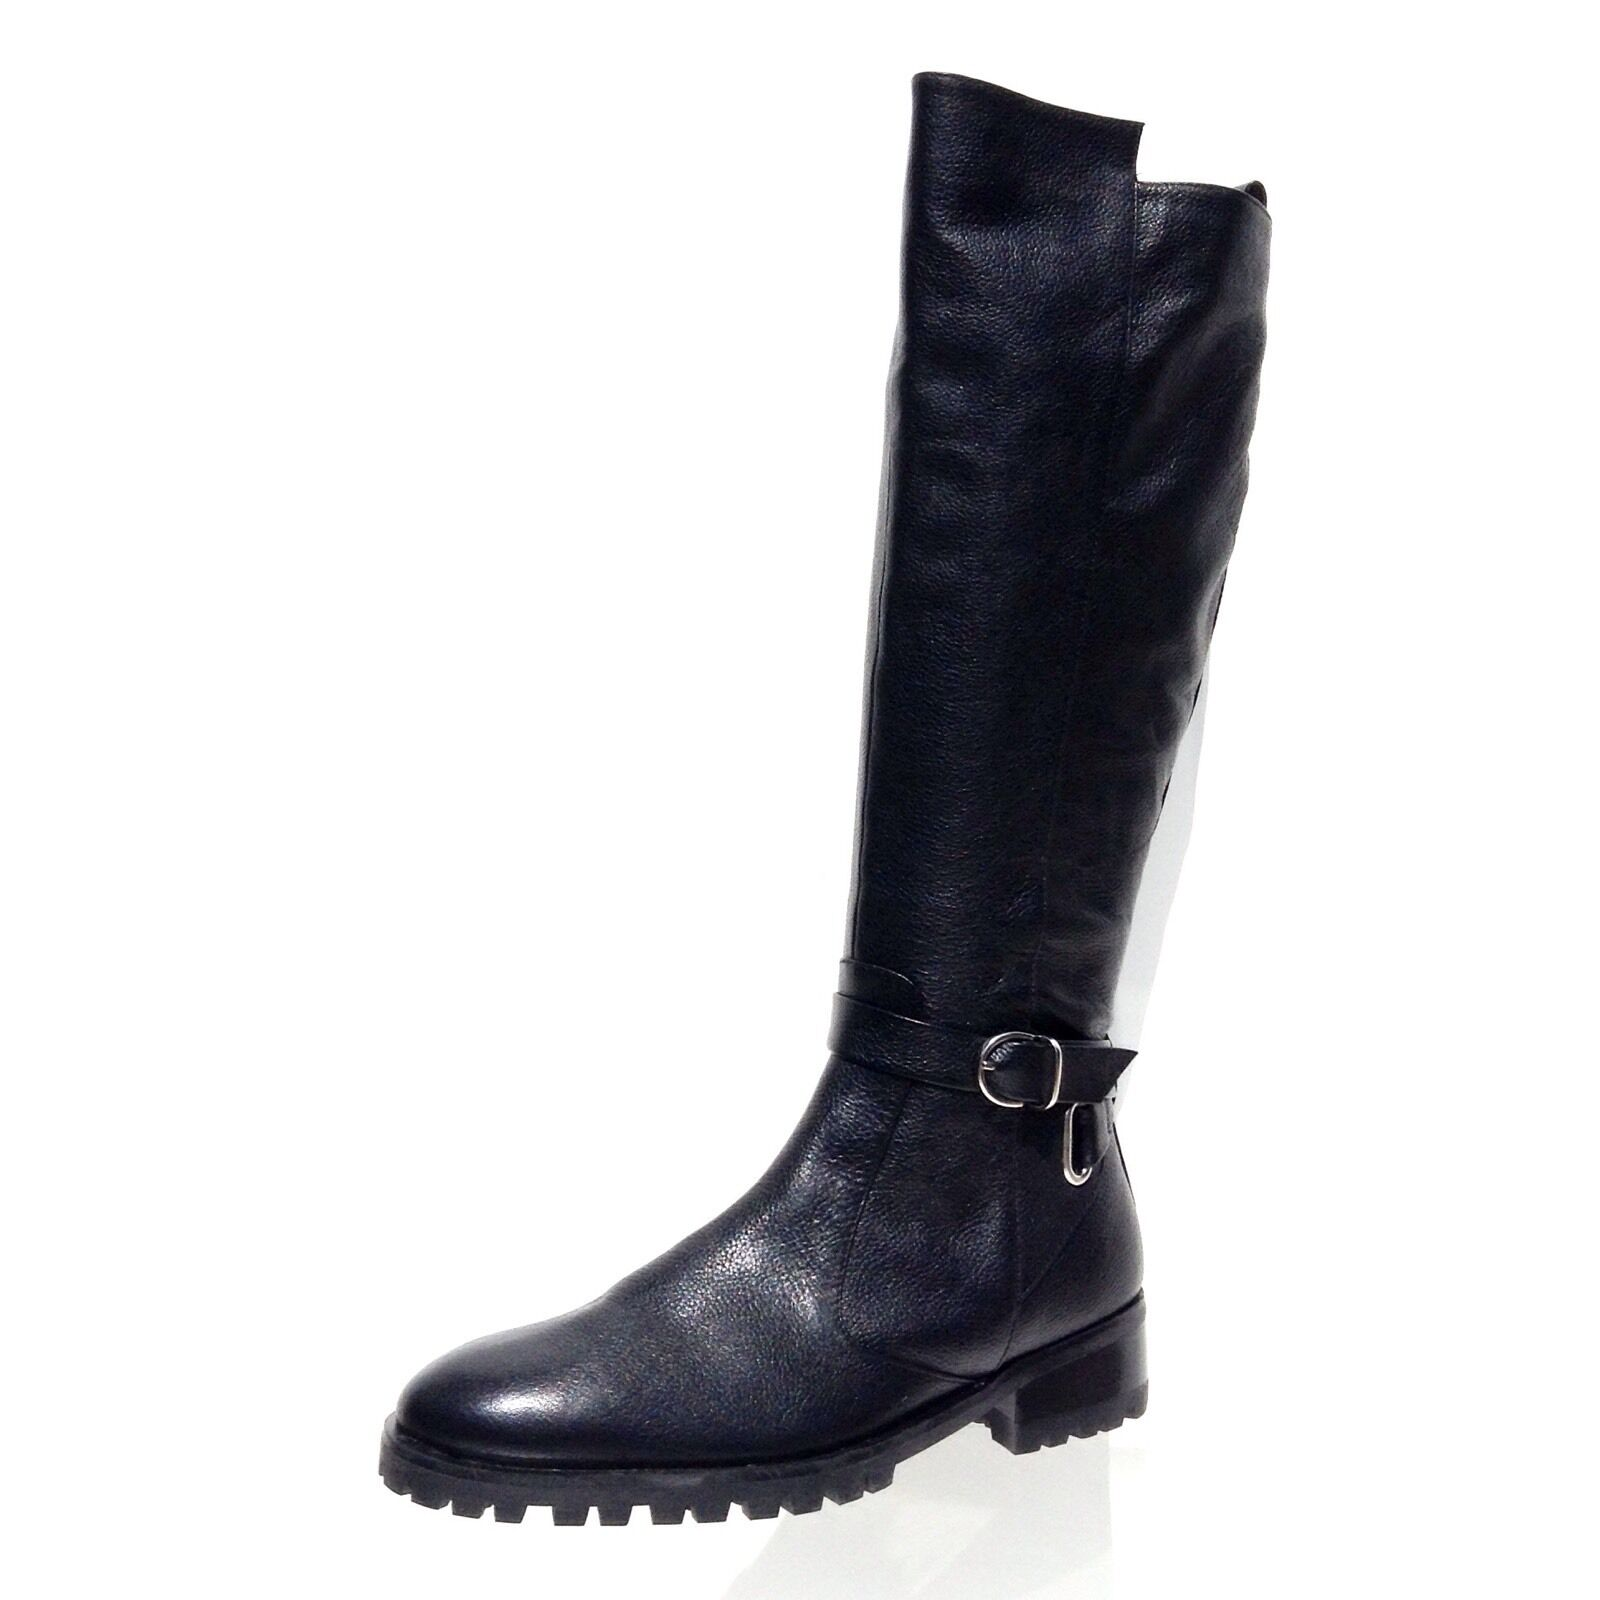 Women's Tesori Valencia Black Color Tall Riding Leather Boots Size 5.5 M NEW!